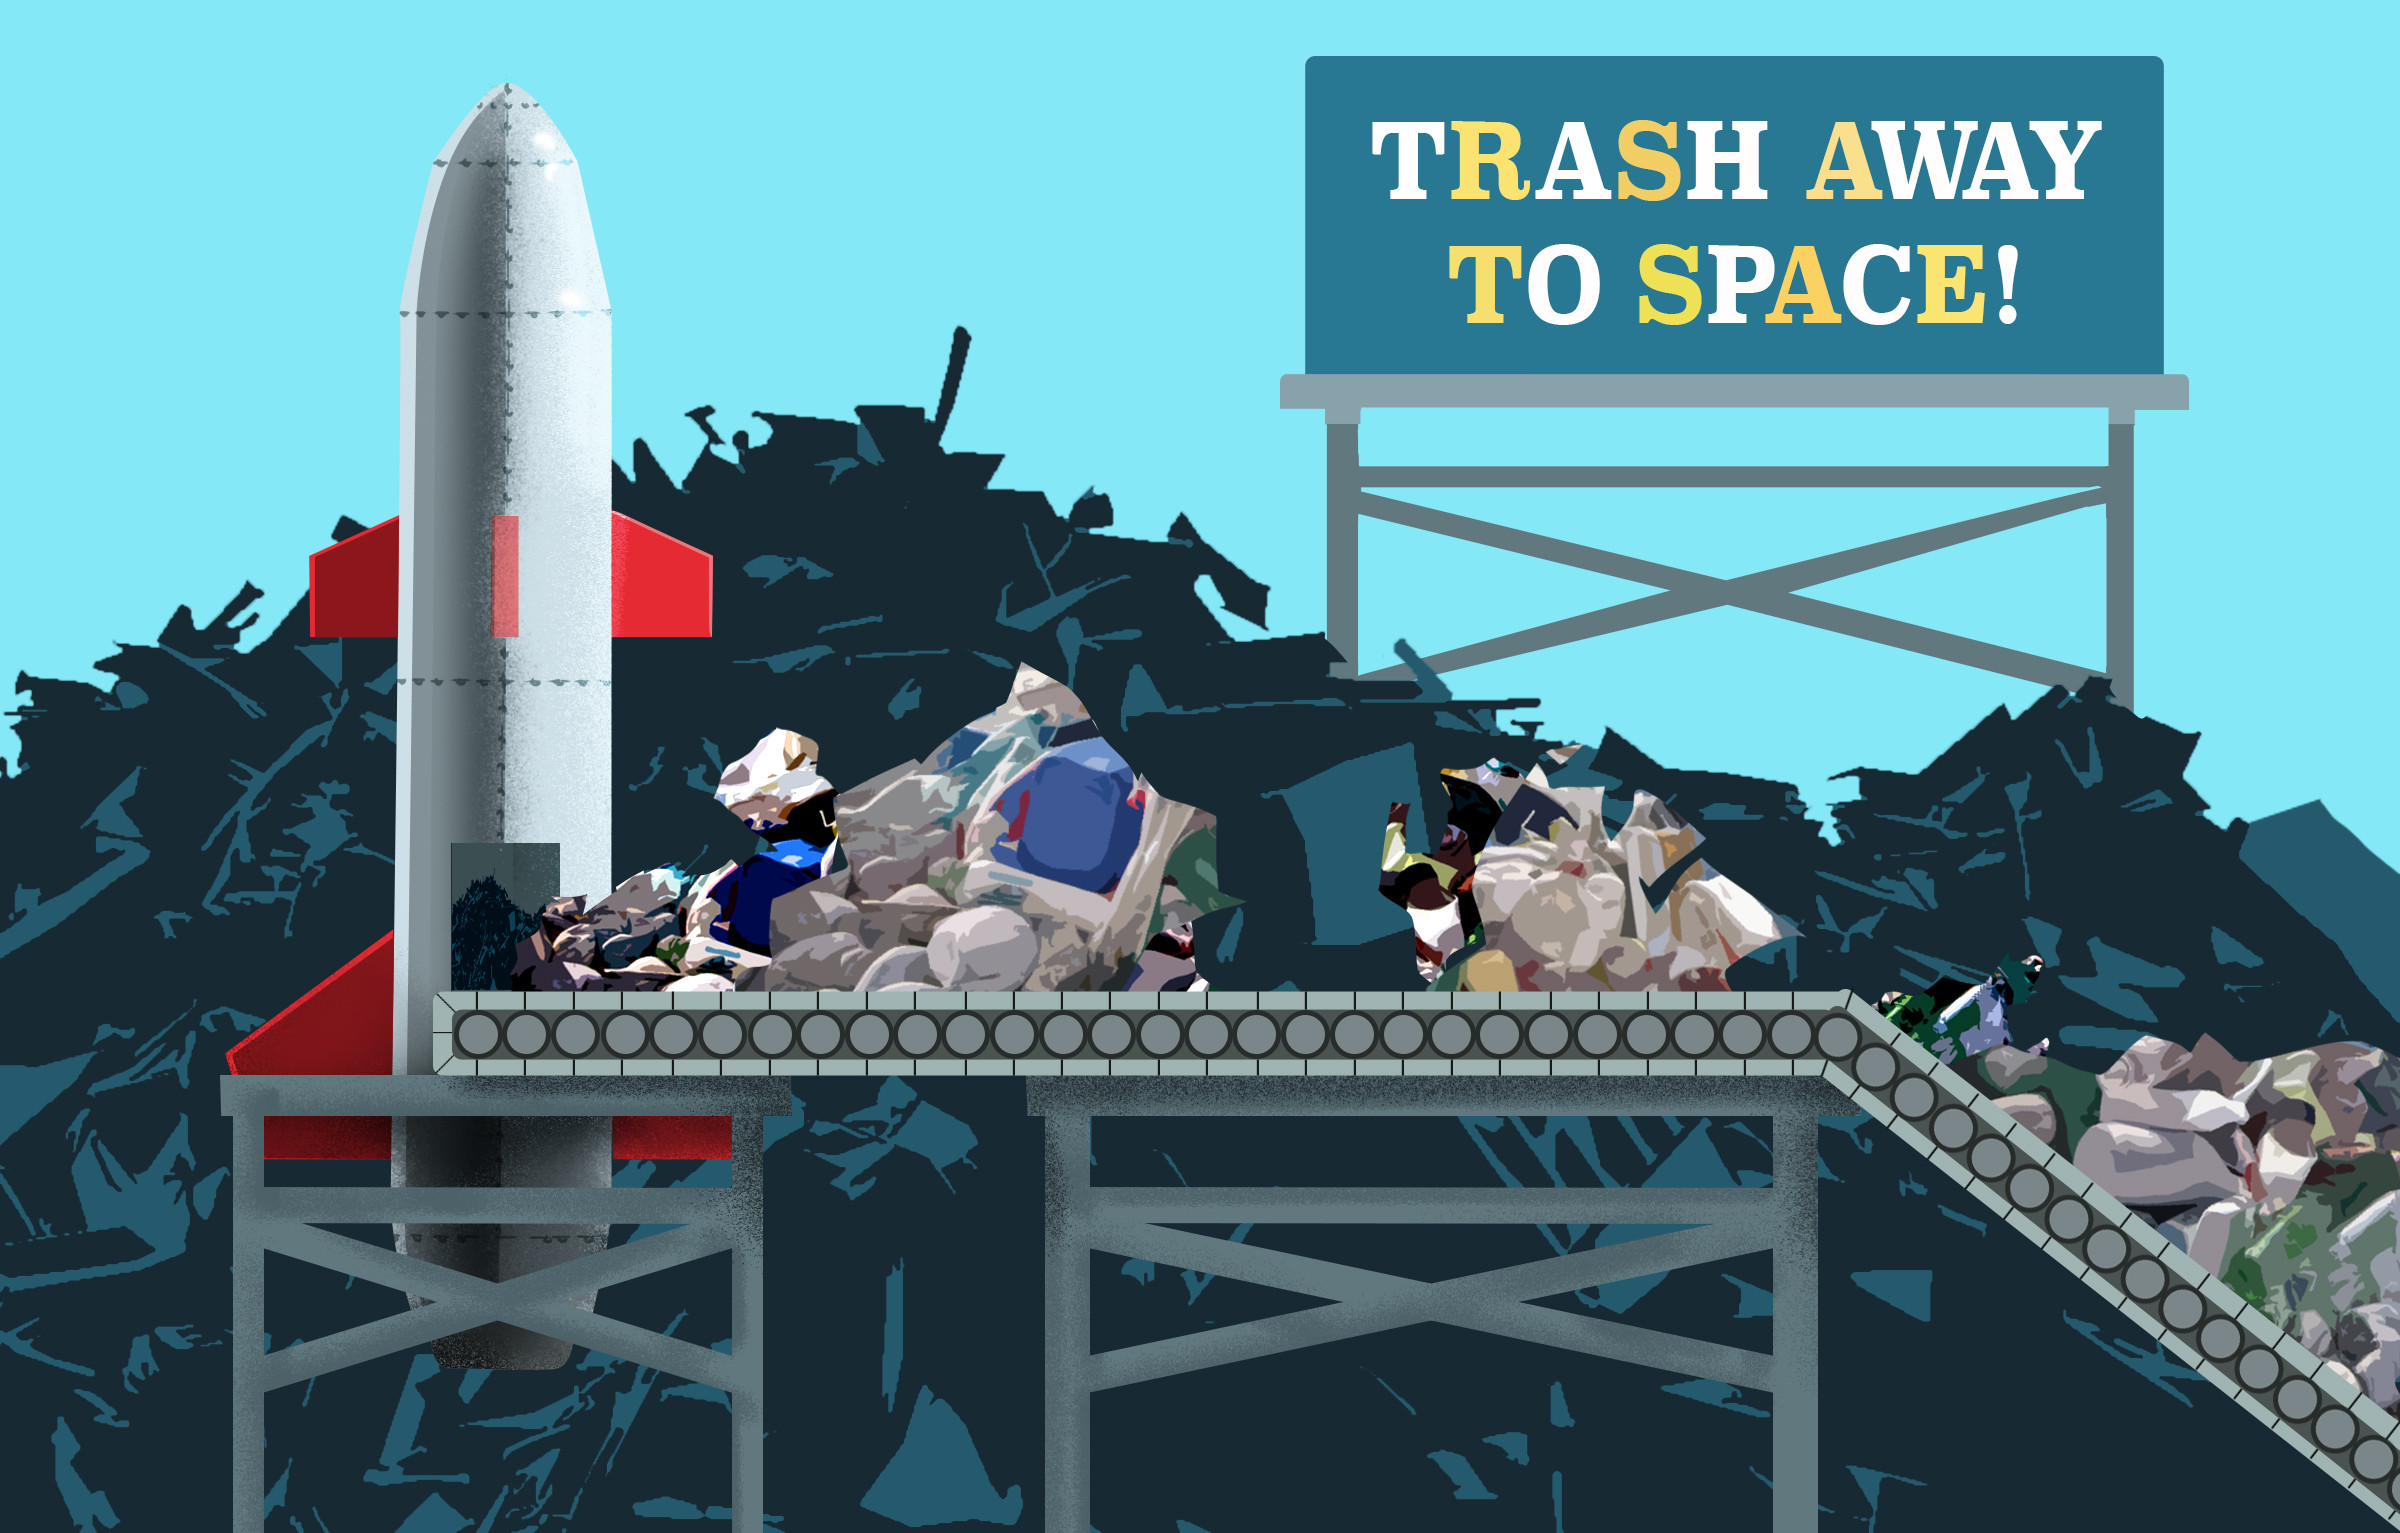 Graphic Design for how to deal with trash.